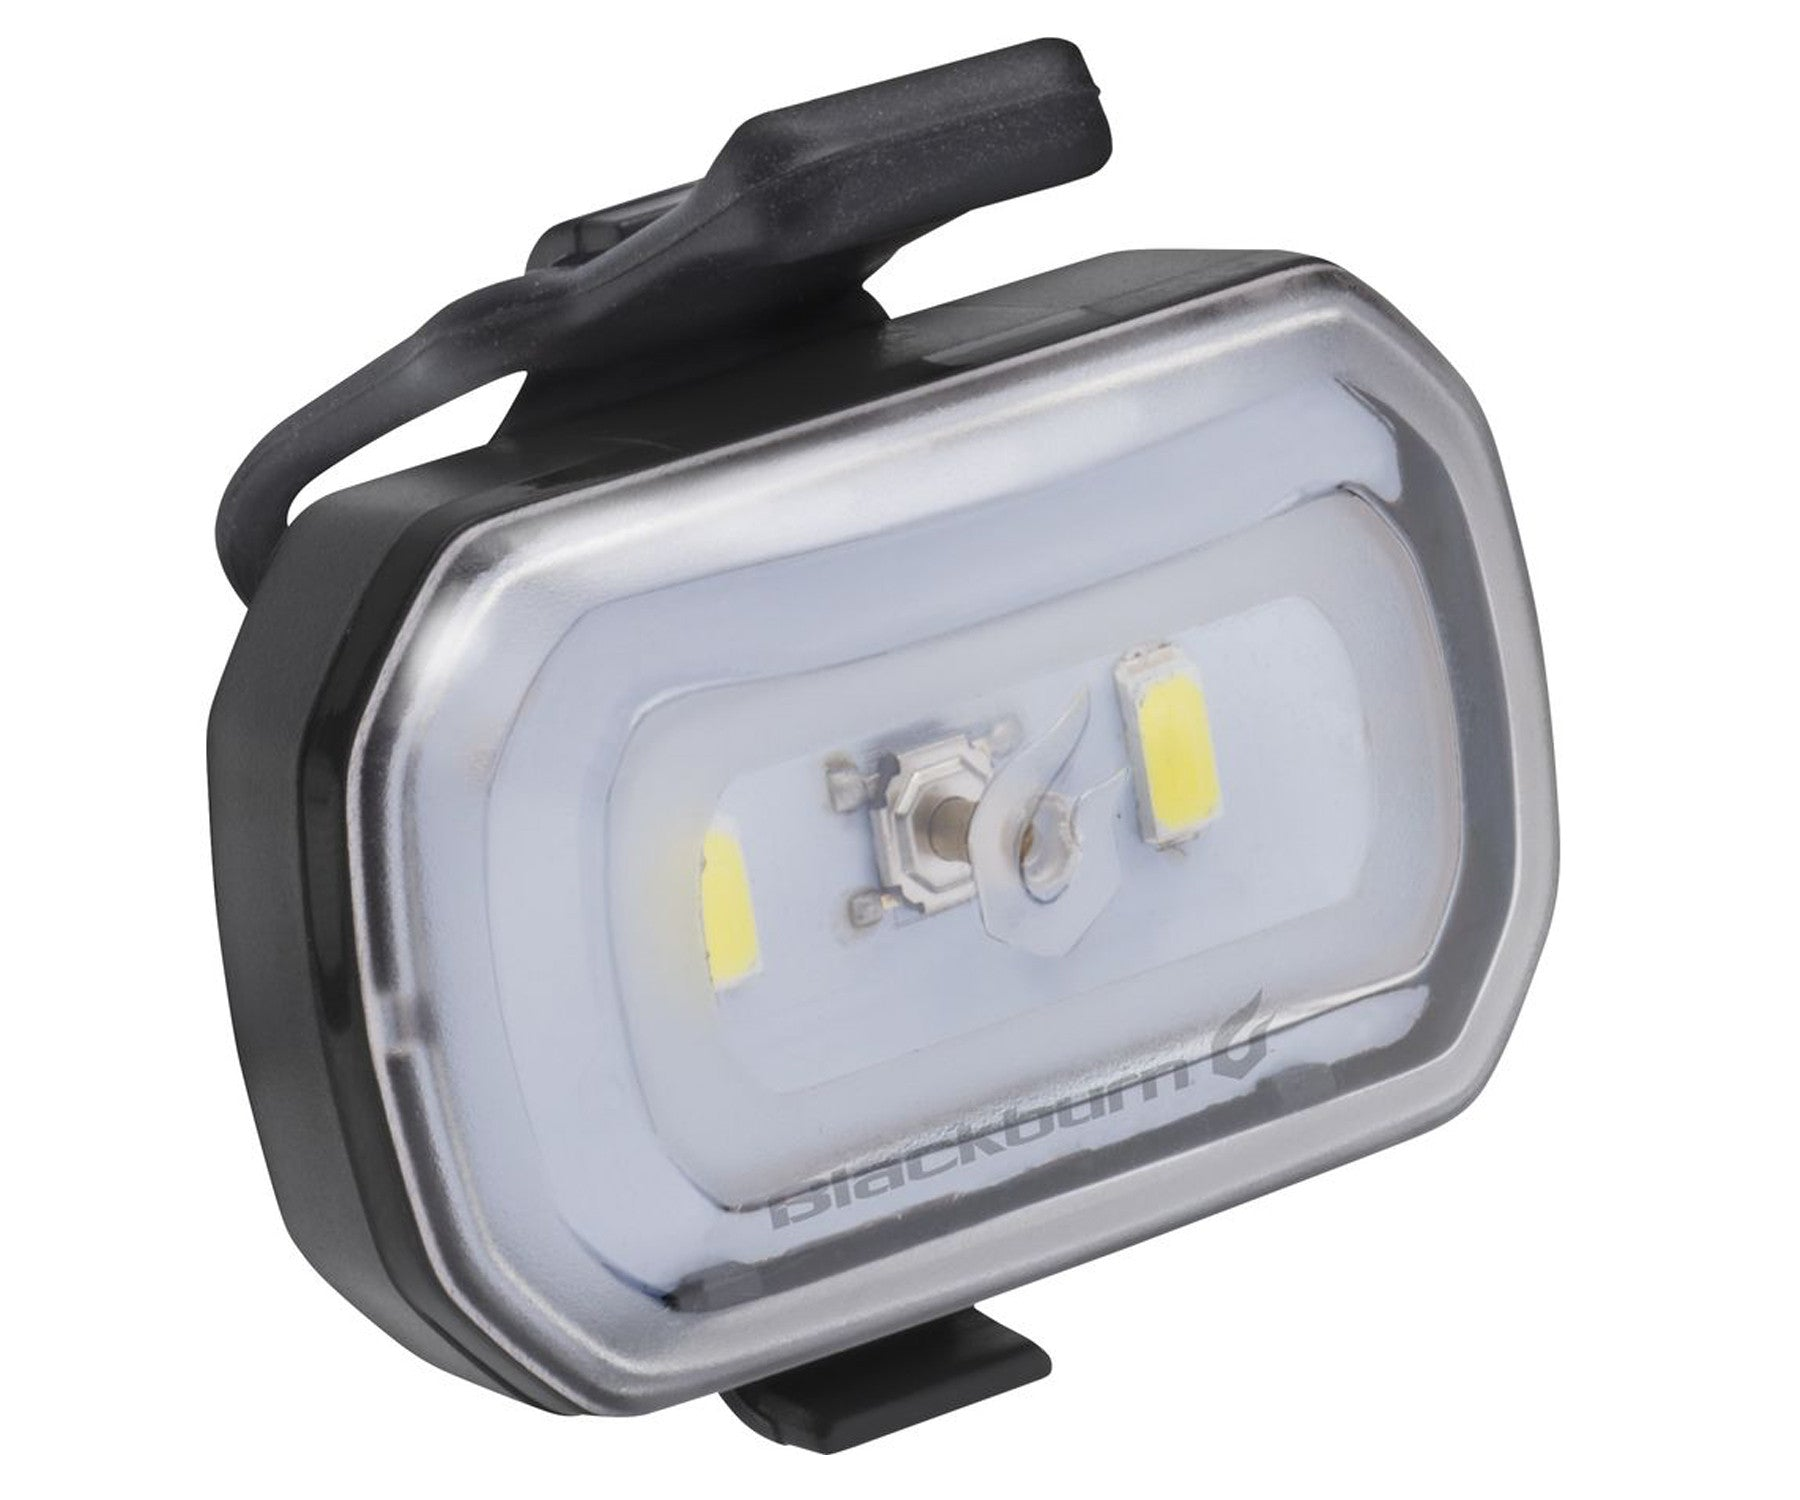 Blackburn Click USB front light - Retrogression